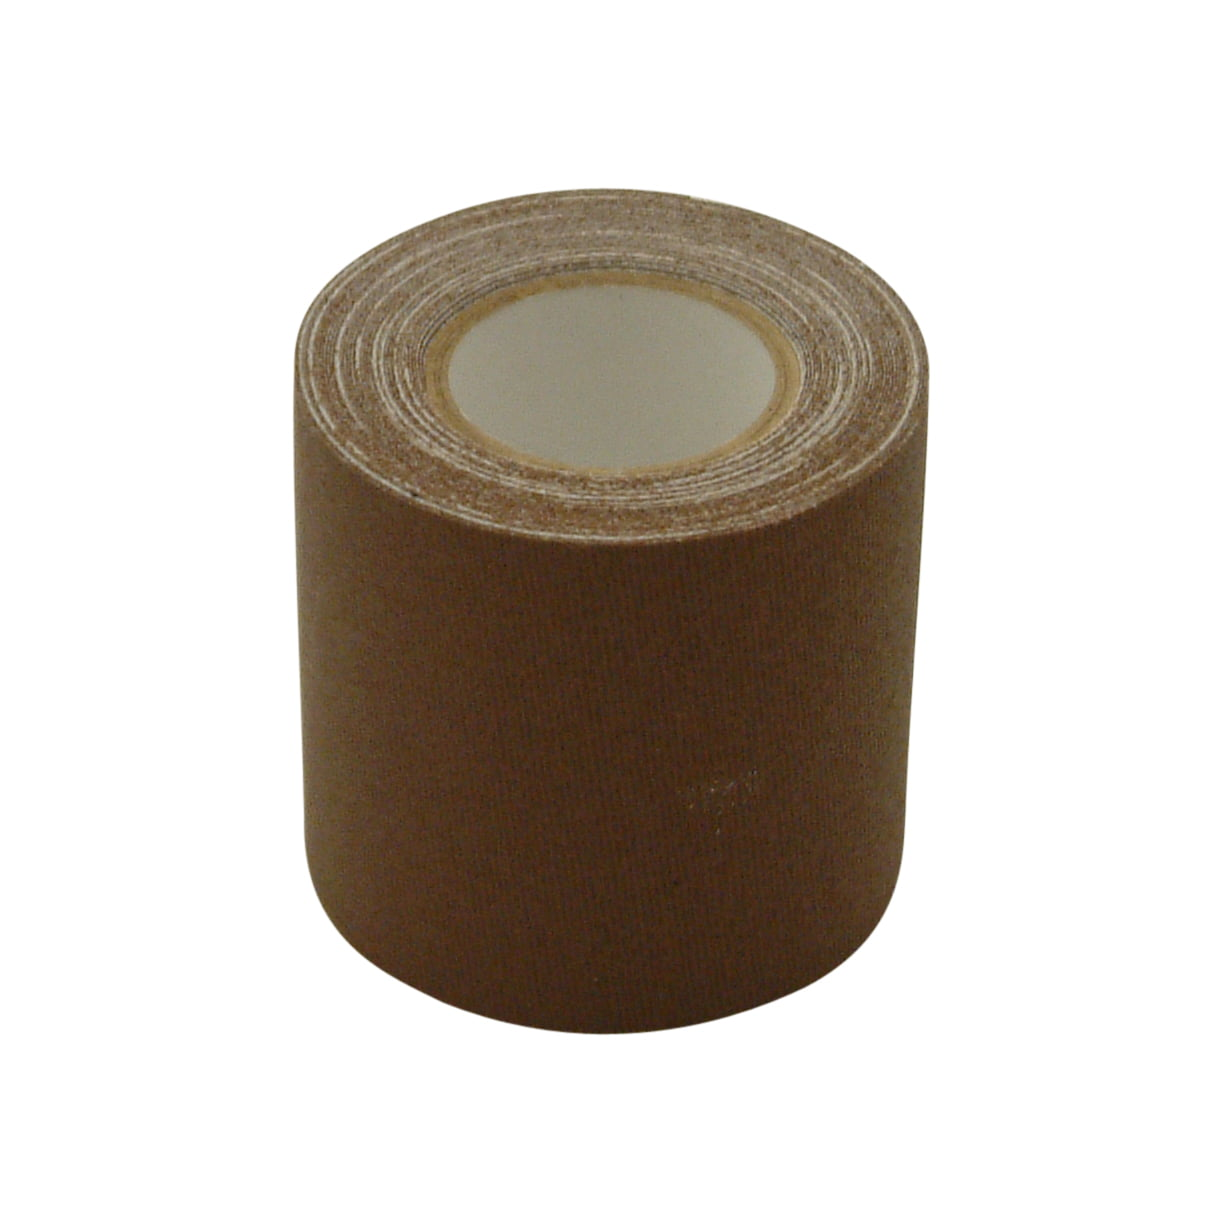 Light Tan Leather Repair Tape 8 x 8 inch Patch Adhesive For Sofas Couch Sofa